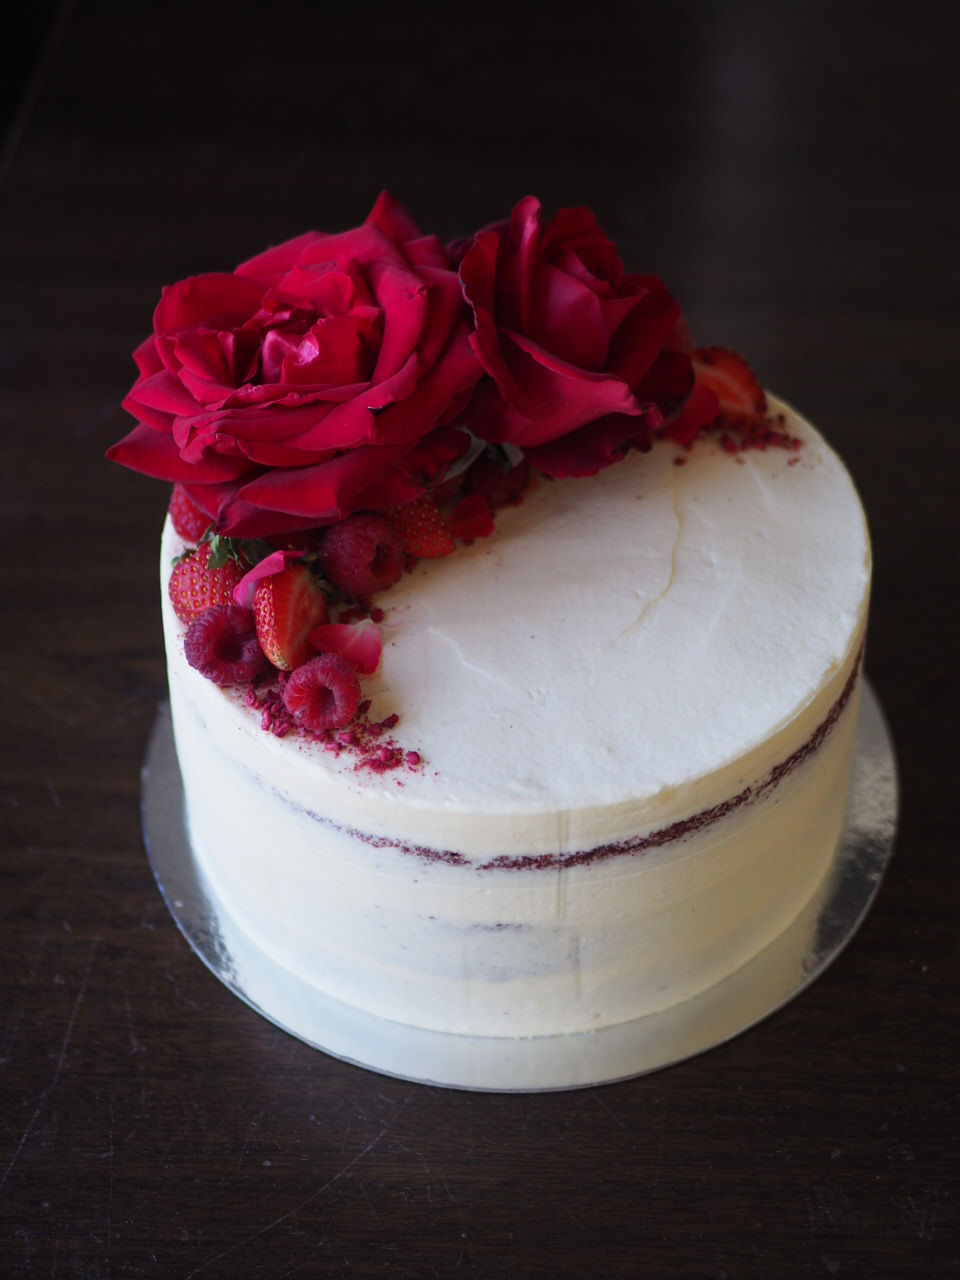 2018-01-07 Red velvet wedding cake 010.JPG